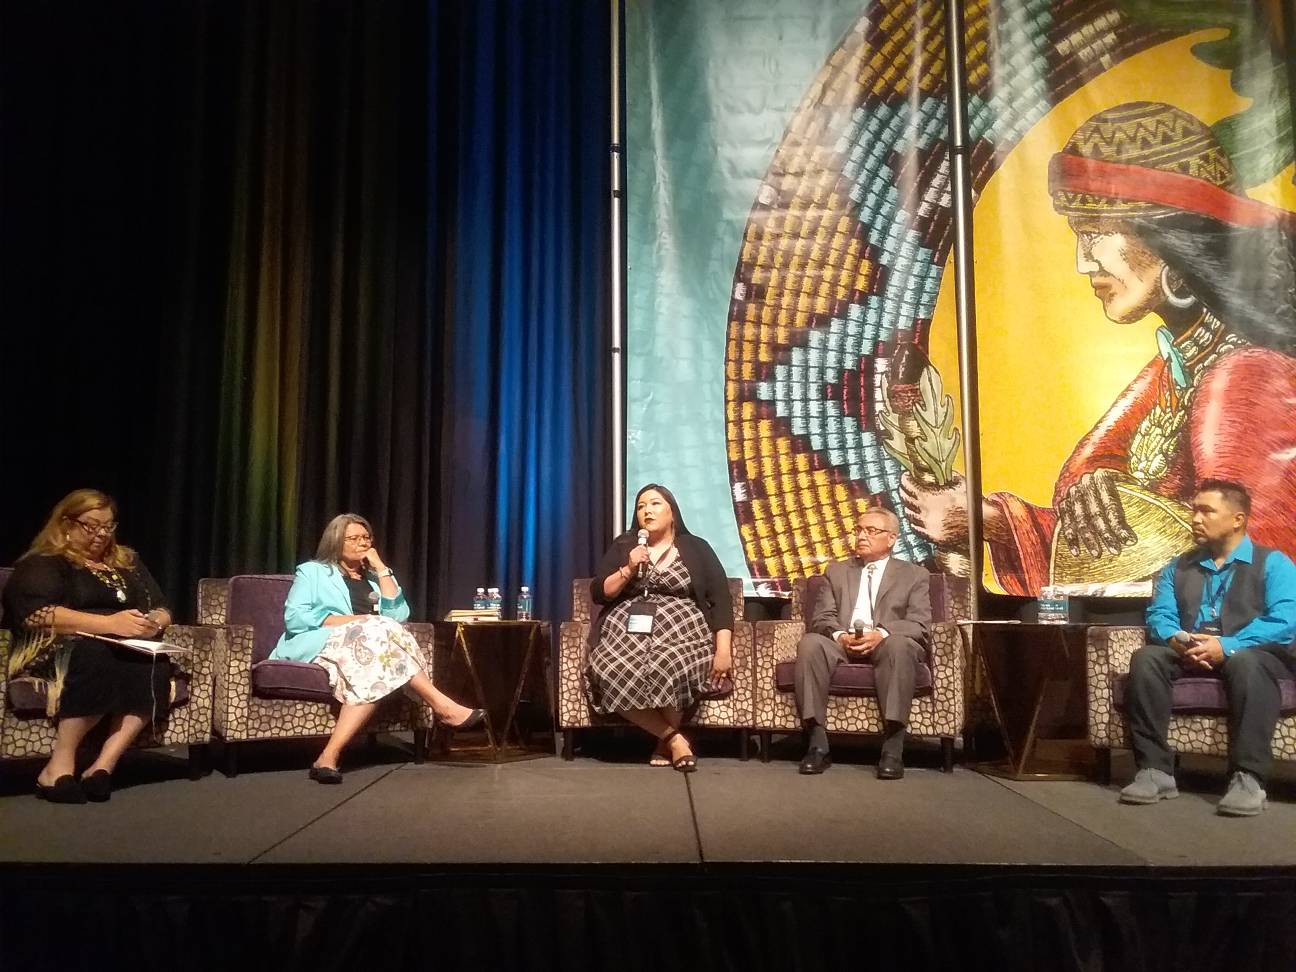 Native American communities, hard hit by the opioid crisis, seek innovative solutions